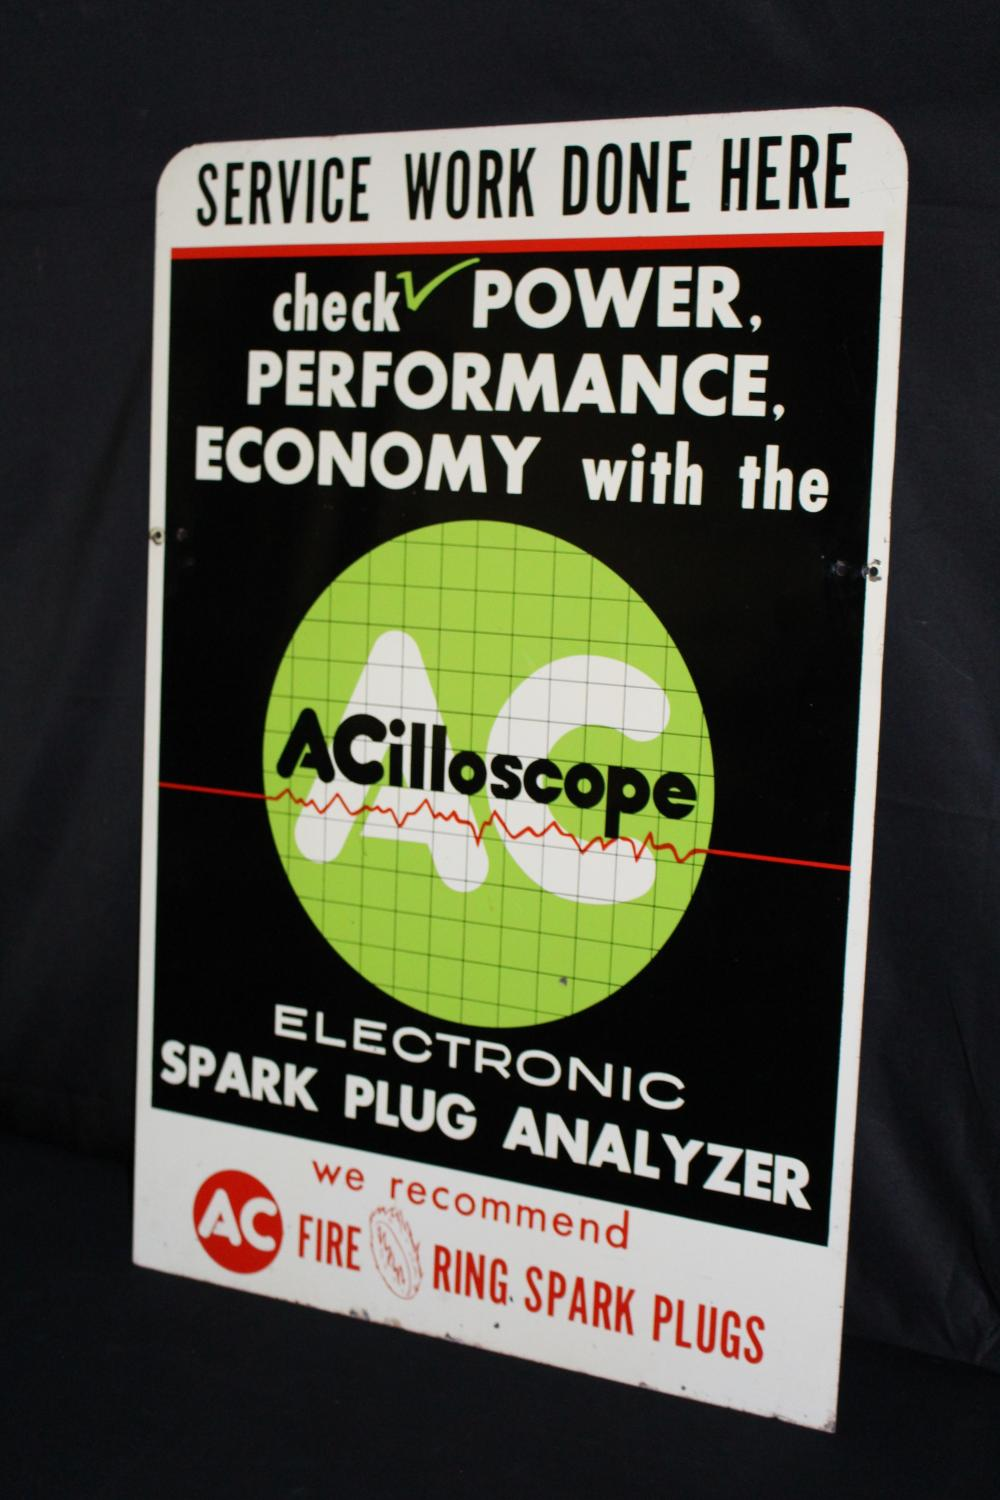 AC ACILLOSCOPE FIRE RING SPARK PLUGS SIGN